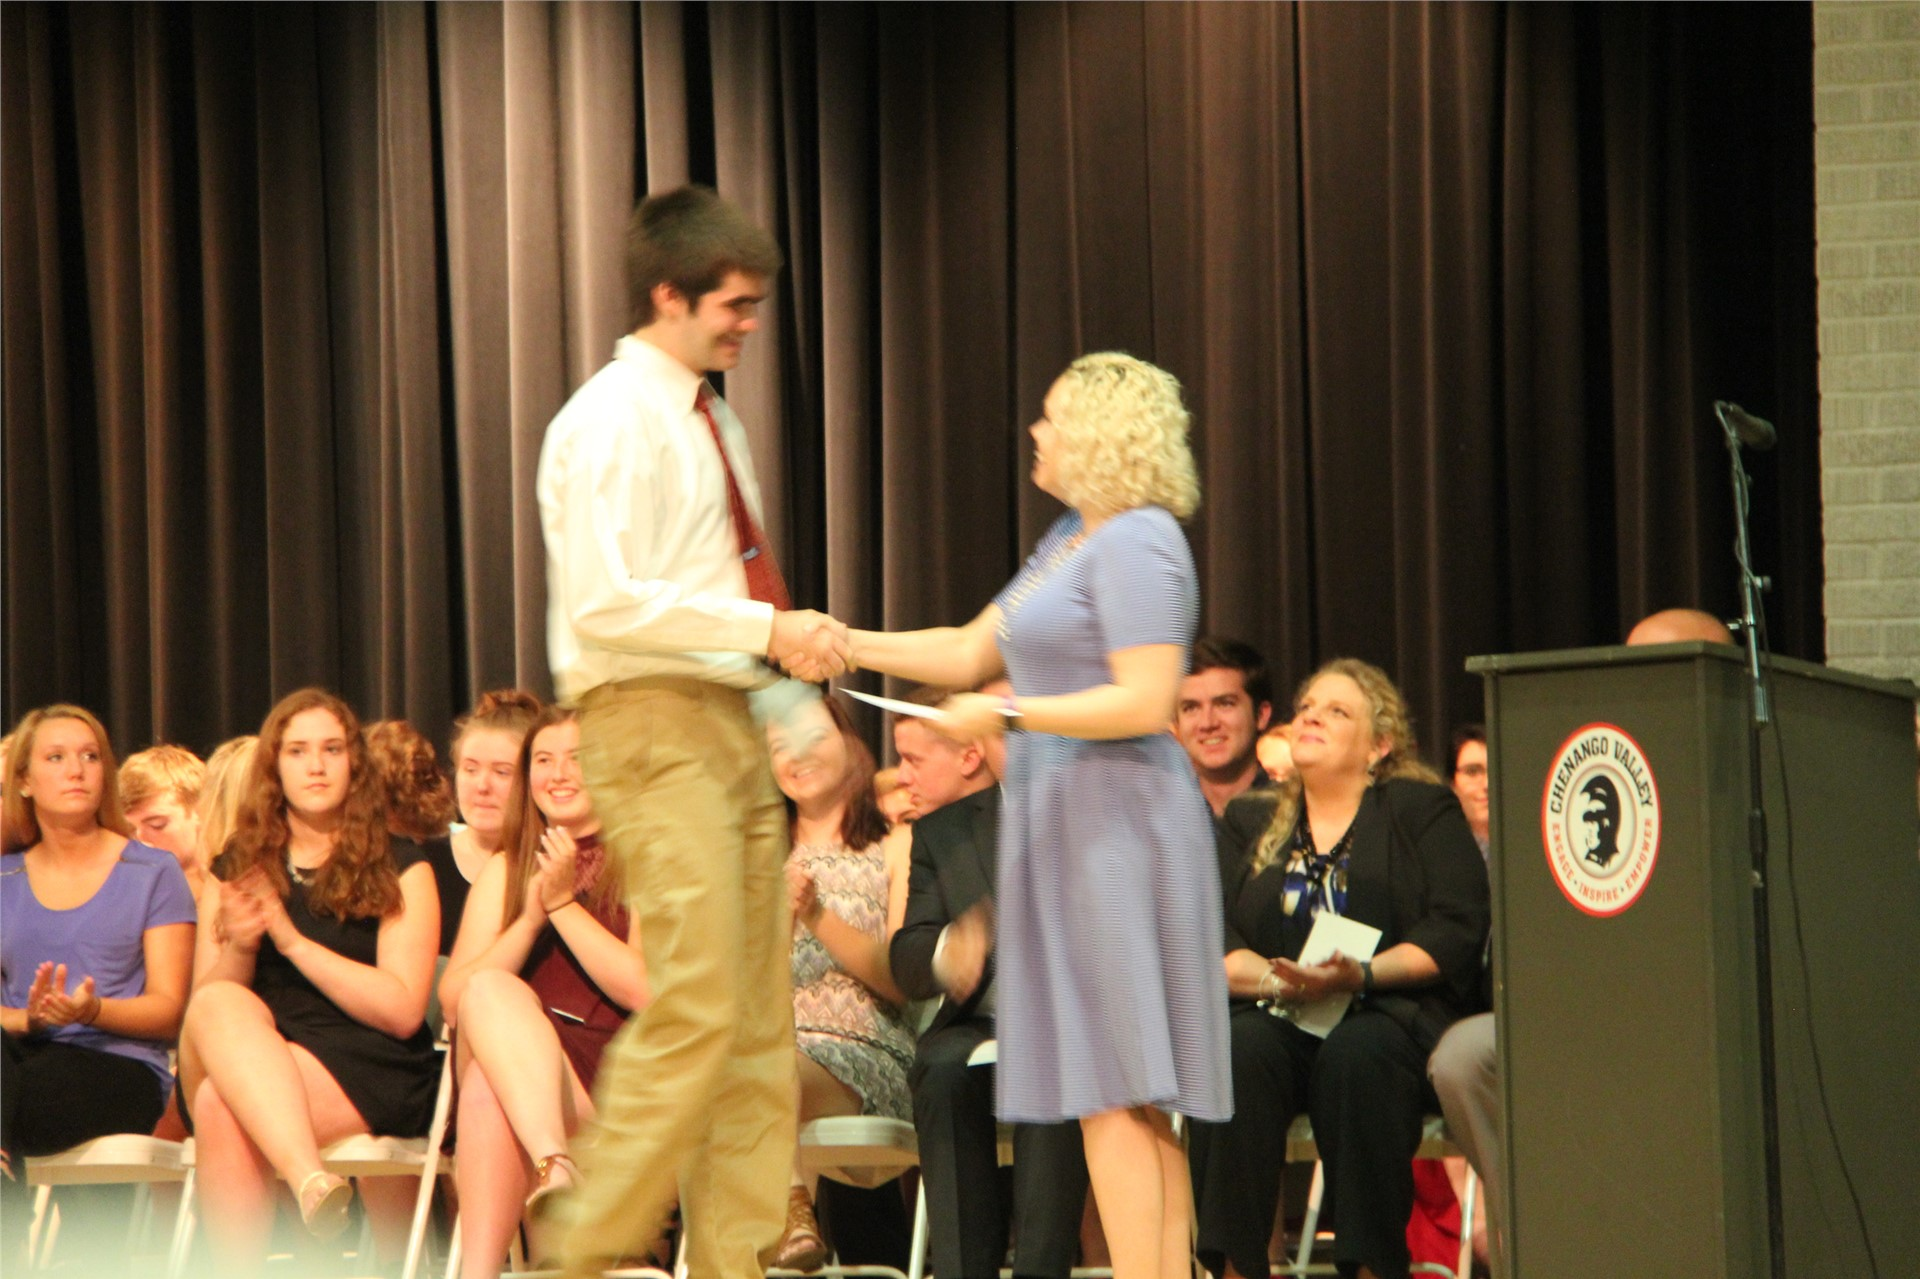 male student accepts award from woman